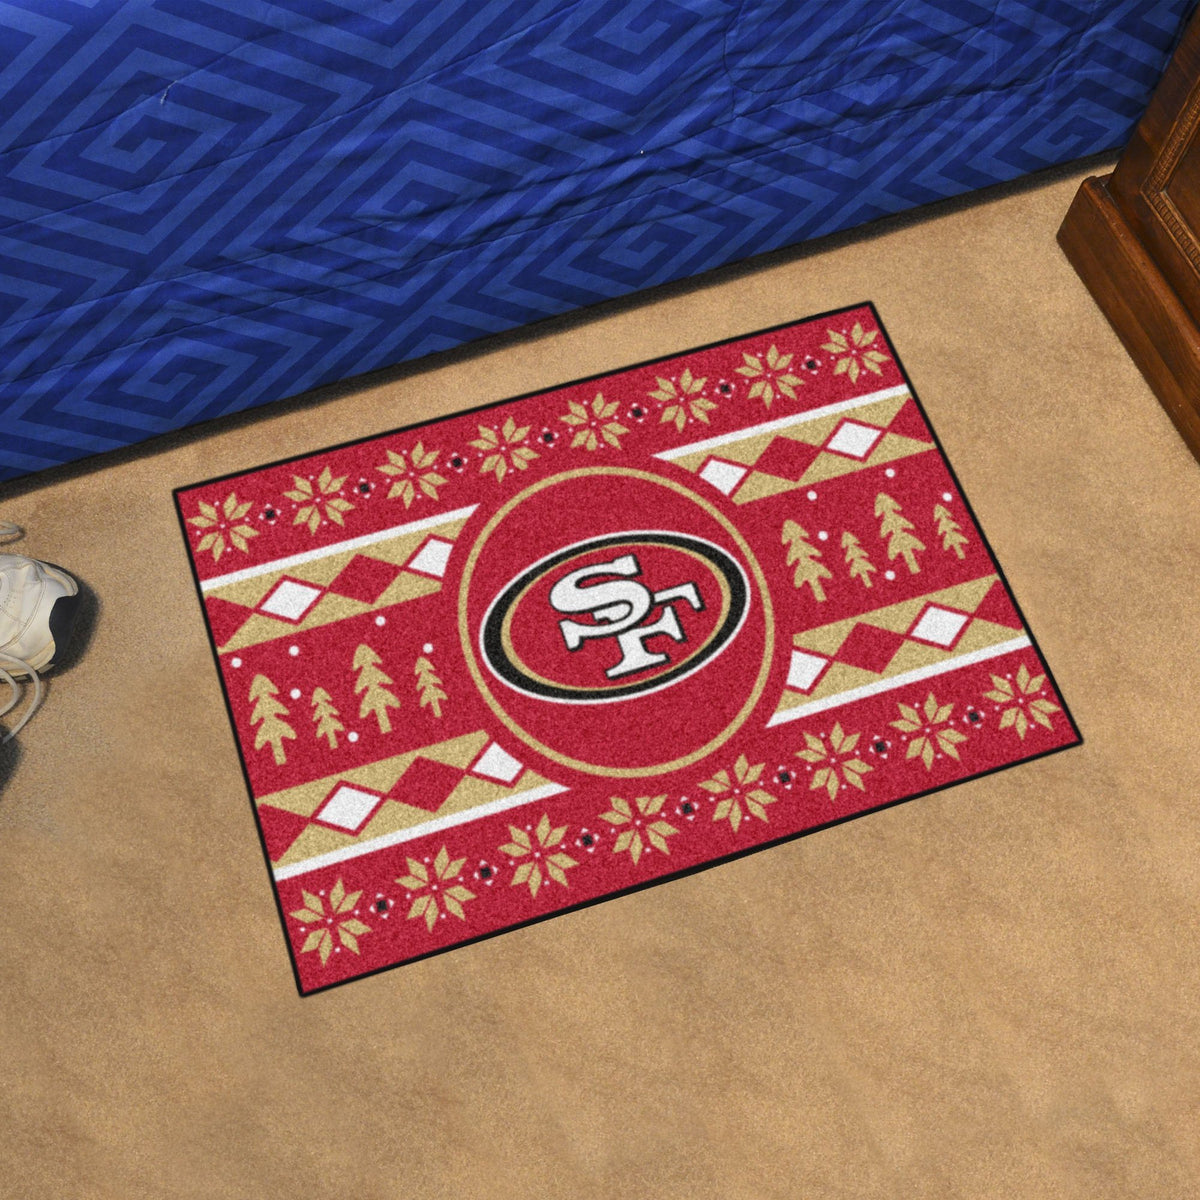 "NFL - Holiday Sweater Starter Mat, 19"" x 30"" NFL Mats, Rectangular Mats, Holiday Sweater Starter Mat, NFL, Home Fan Mats San Francisco 49ers"